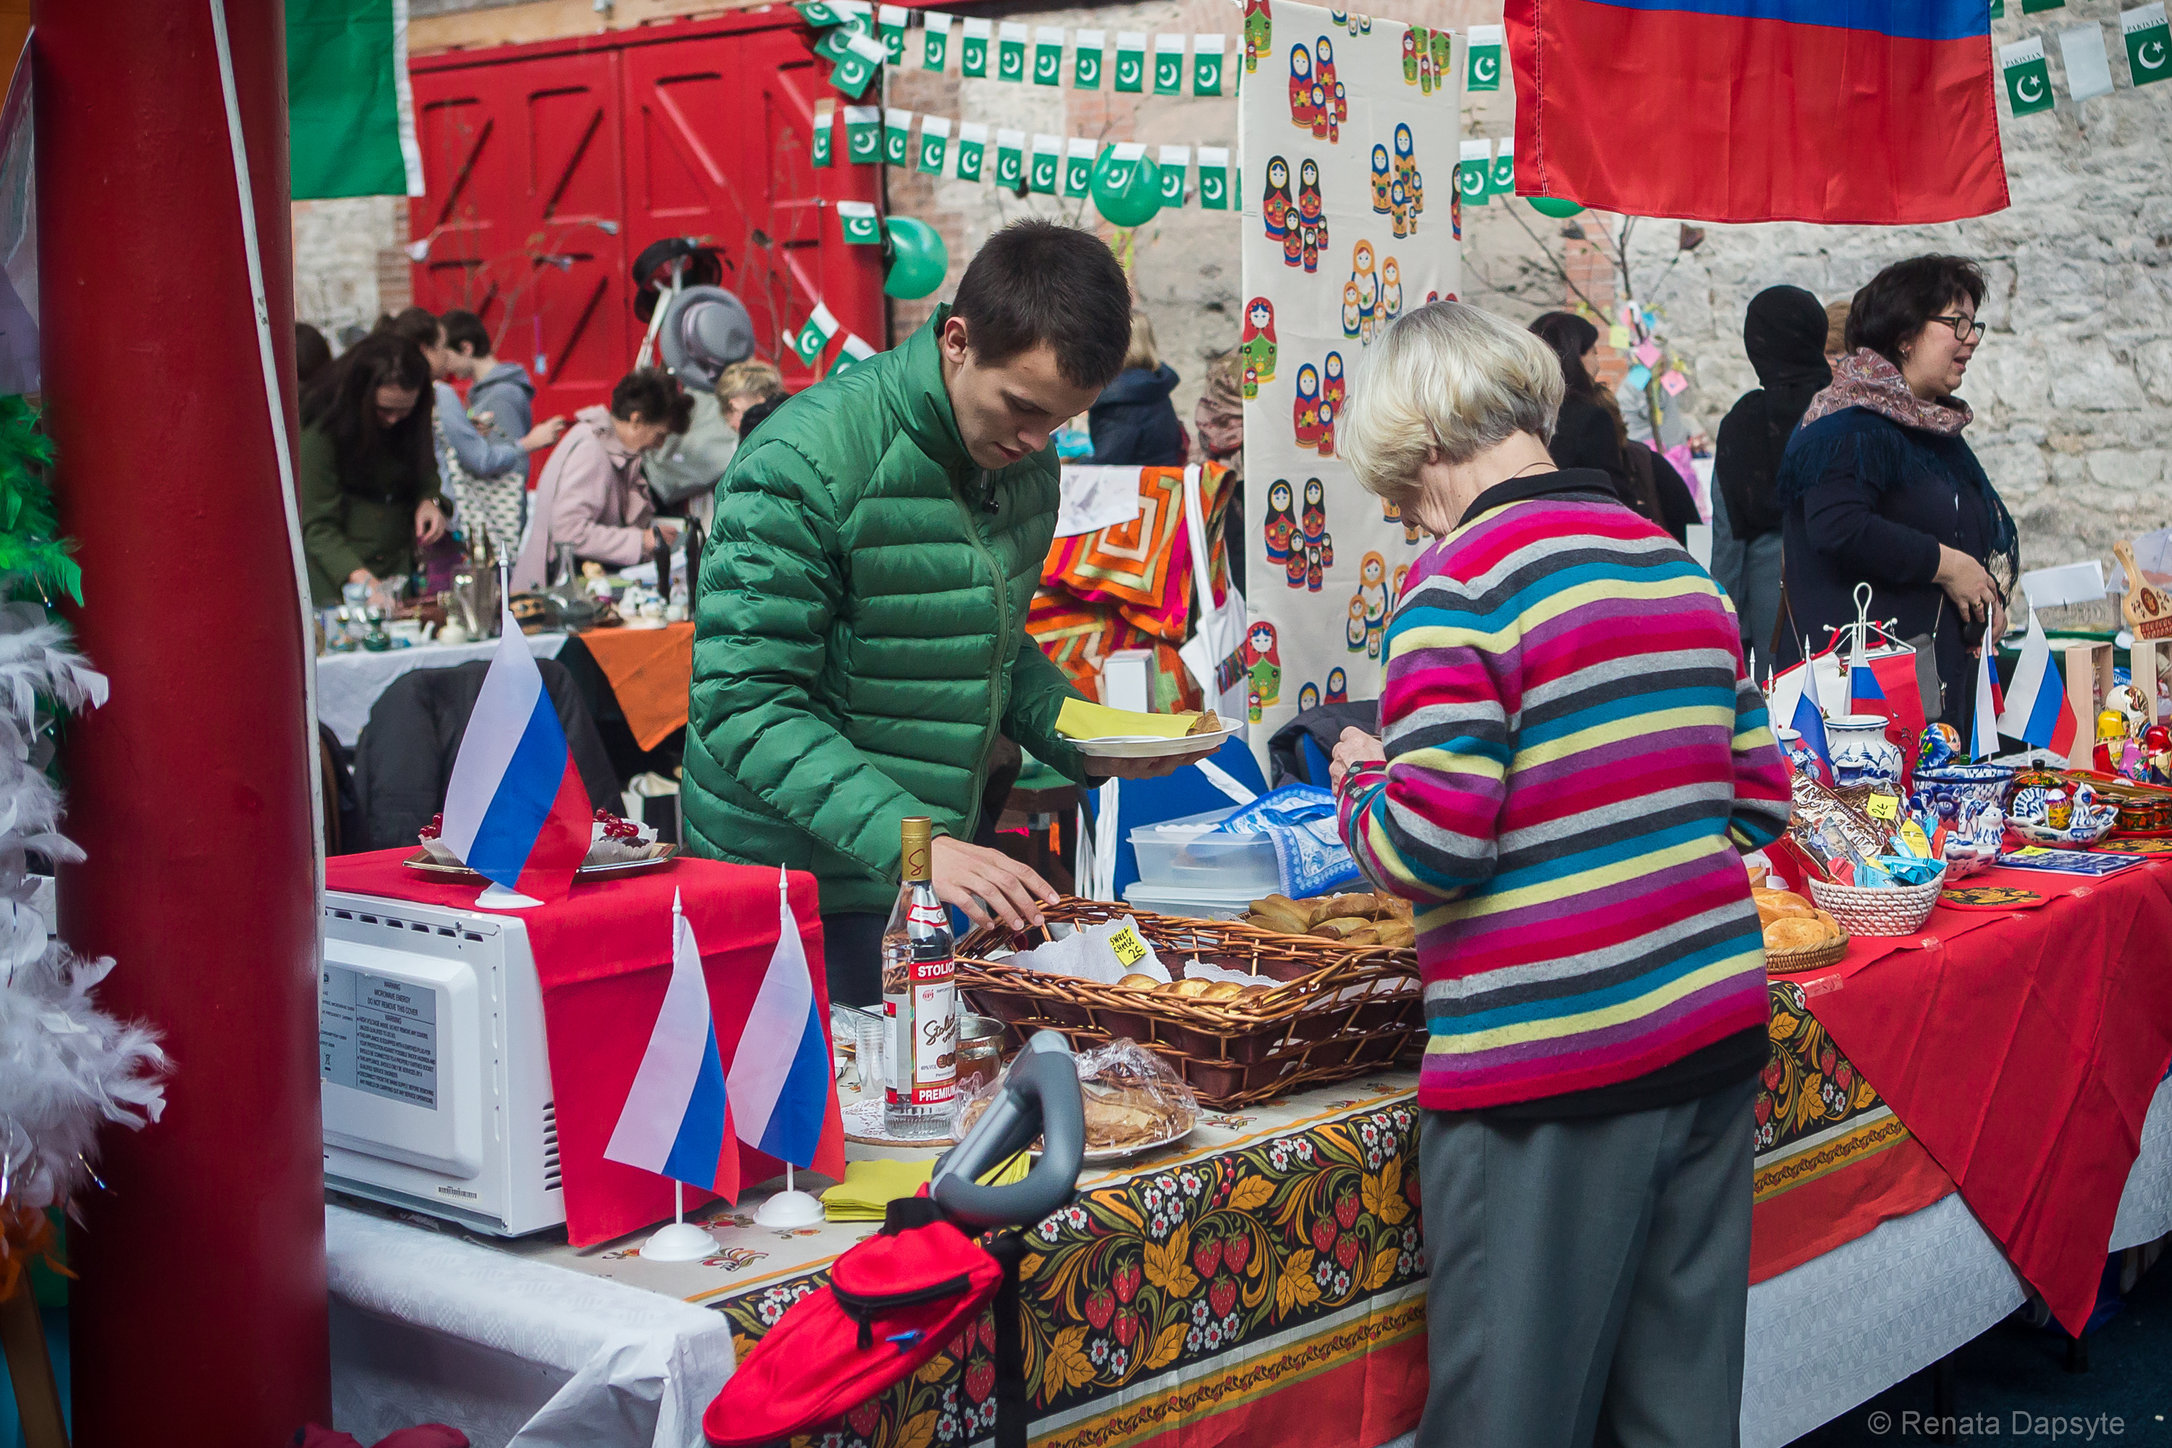 047_International Charity Bazaar Dublin 2013.JPG